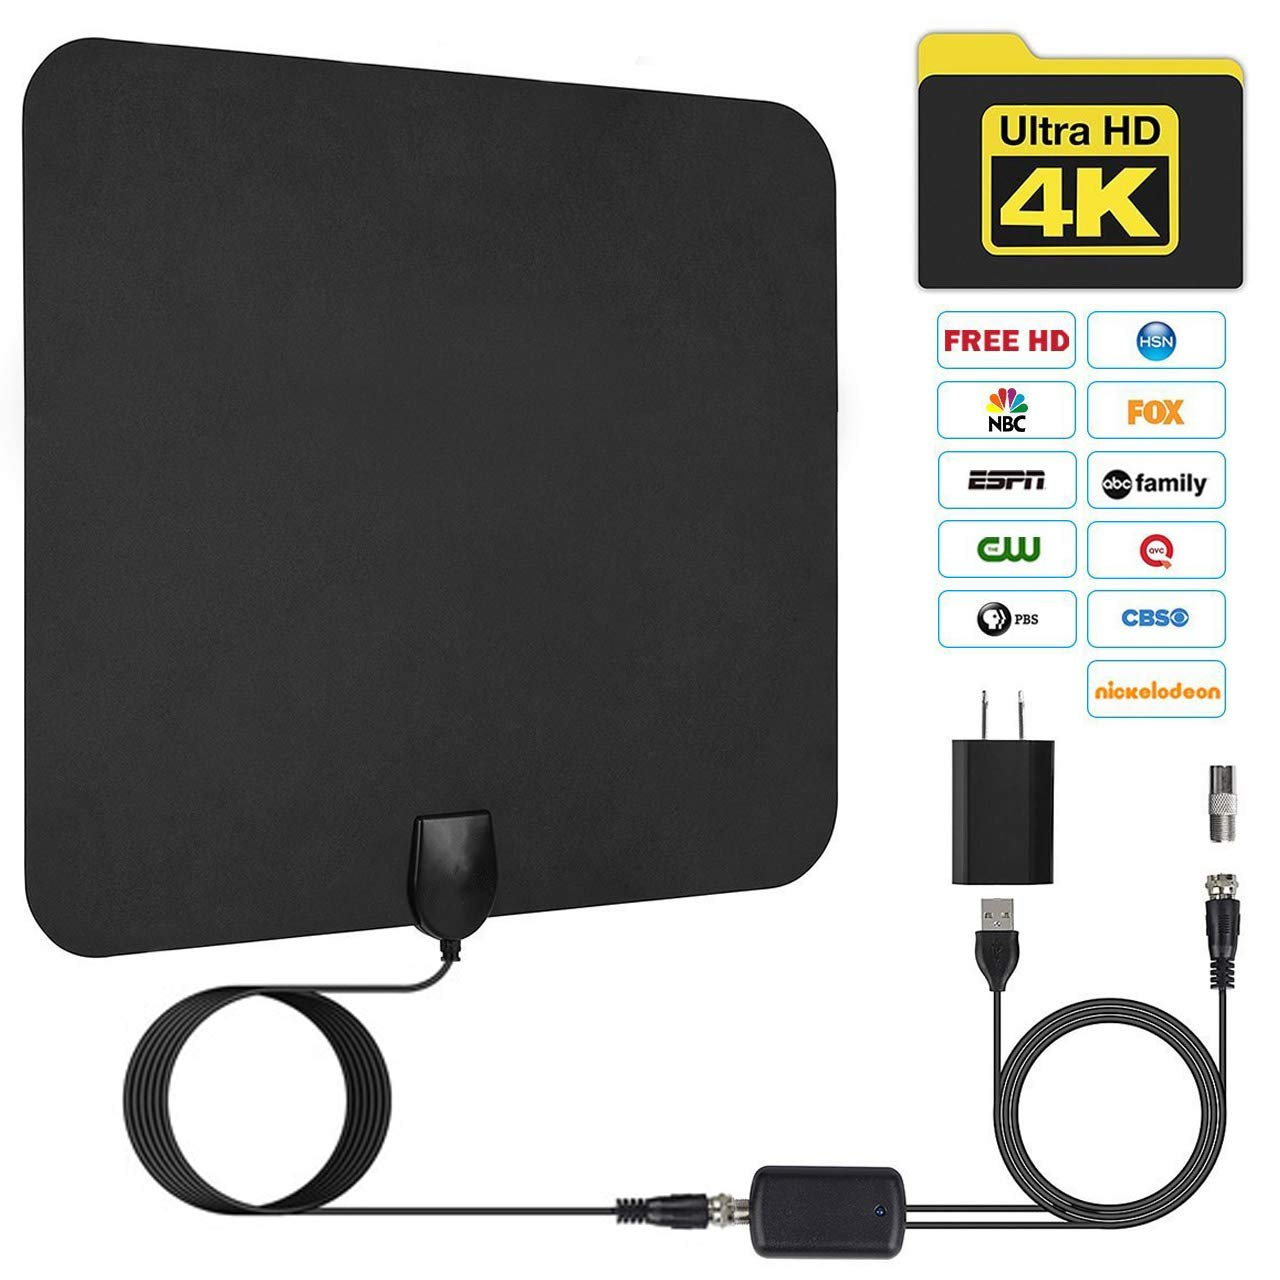 JFONG TV Antenna, Indoor Digital Amplified HDTV Antennas 50-80 Miles Range With Detachable Signal Amplifier, UL Adapter and 16.5FT Longer Coax Cable - Support 4K 1080p (Black)